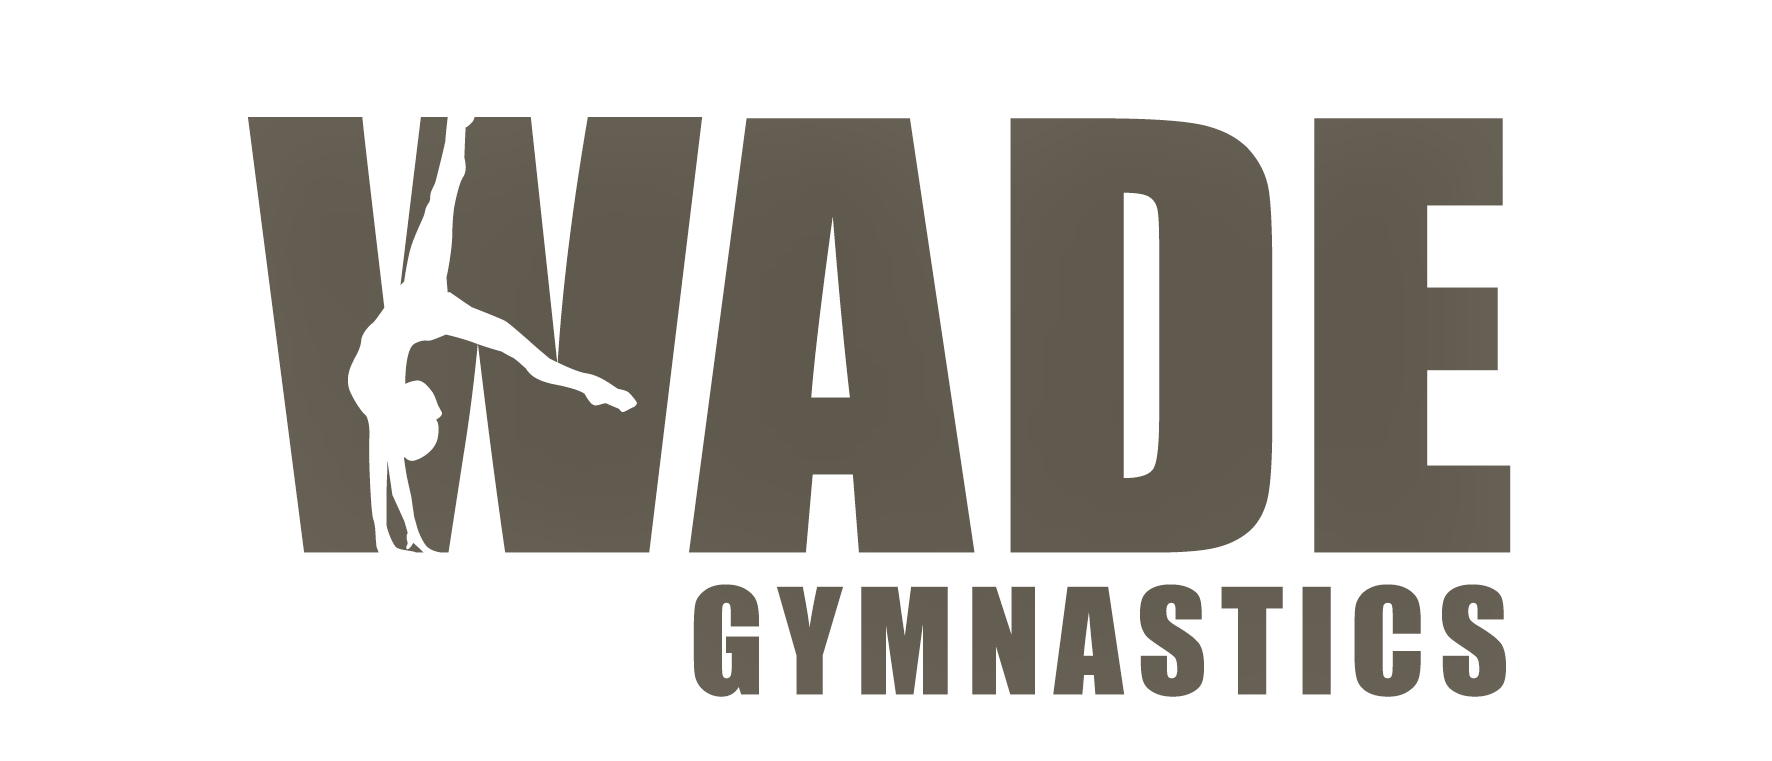 Wade Gymnastics Club logo